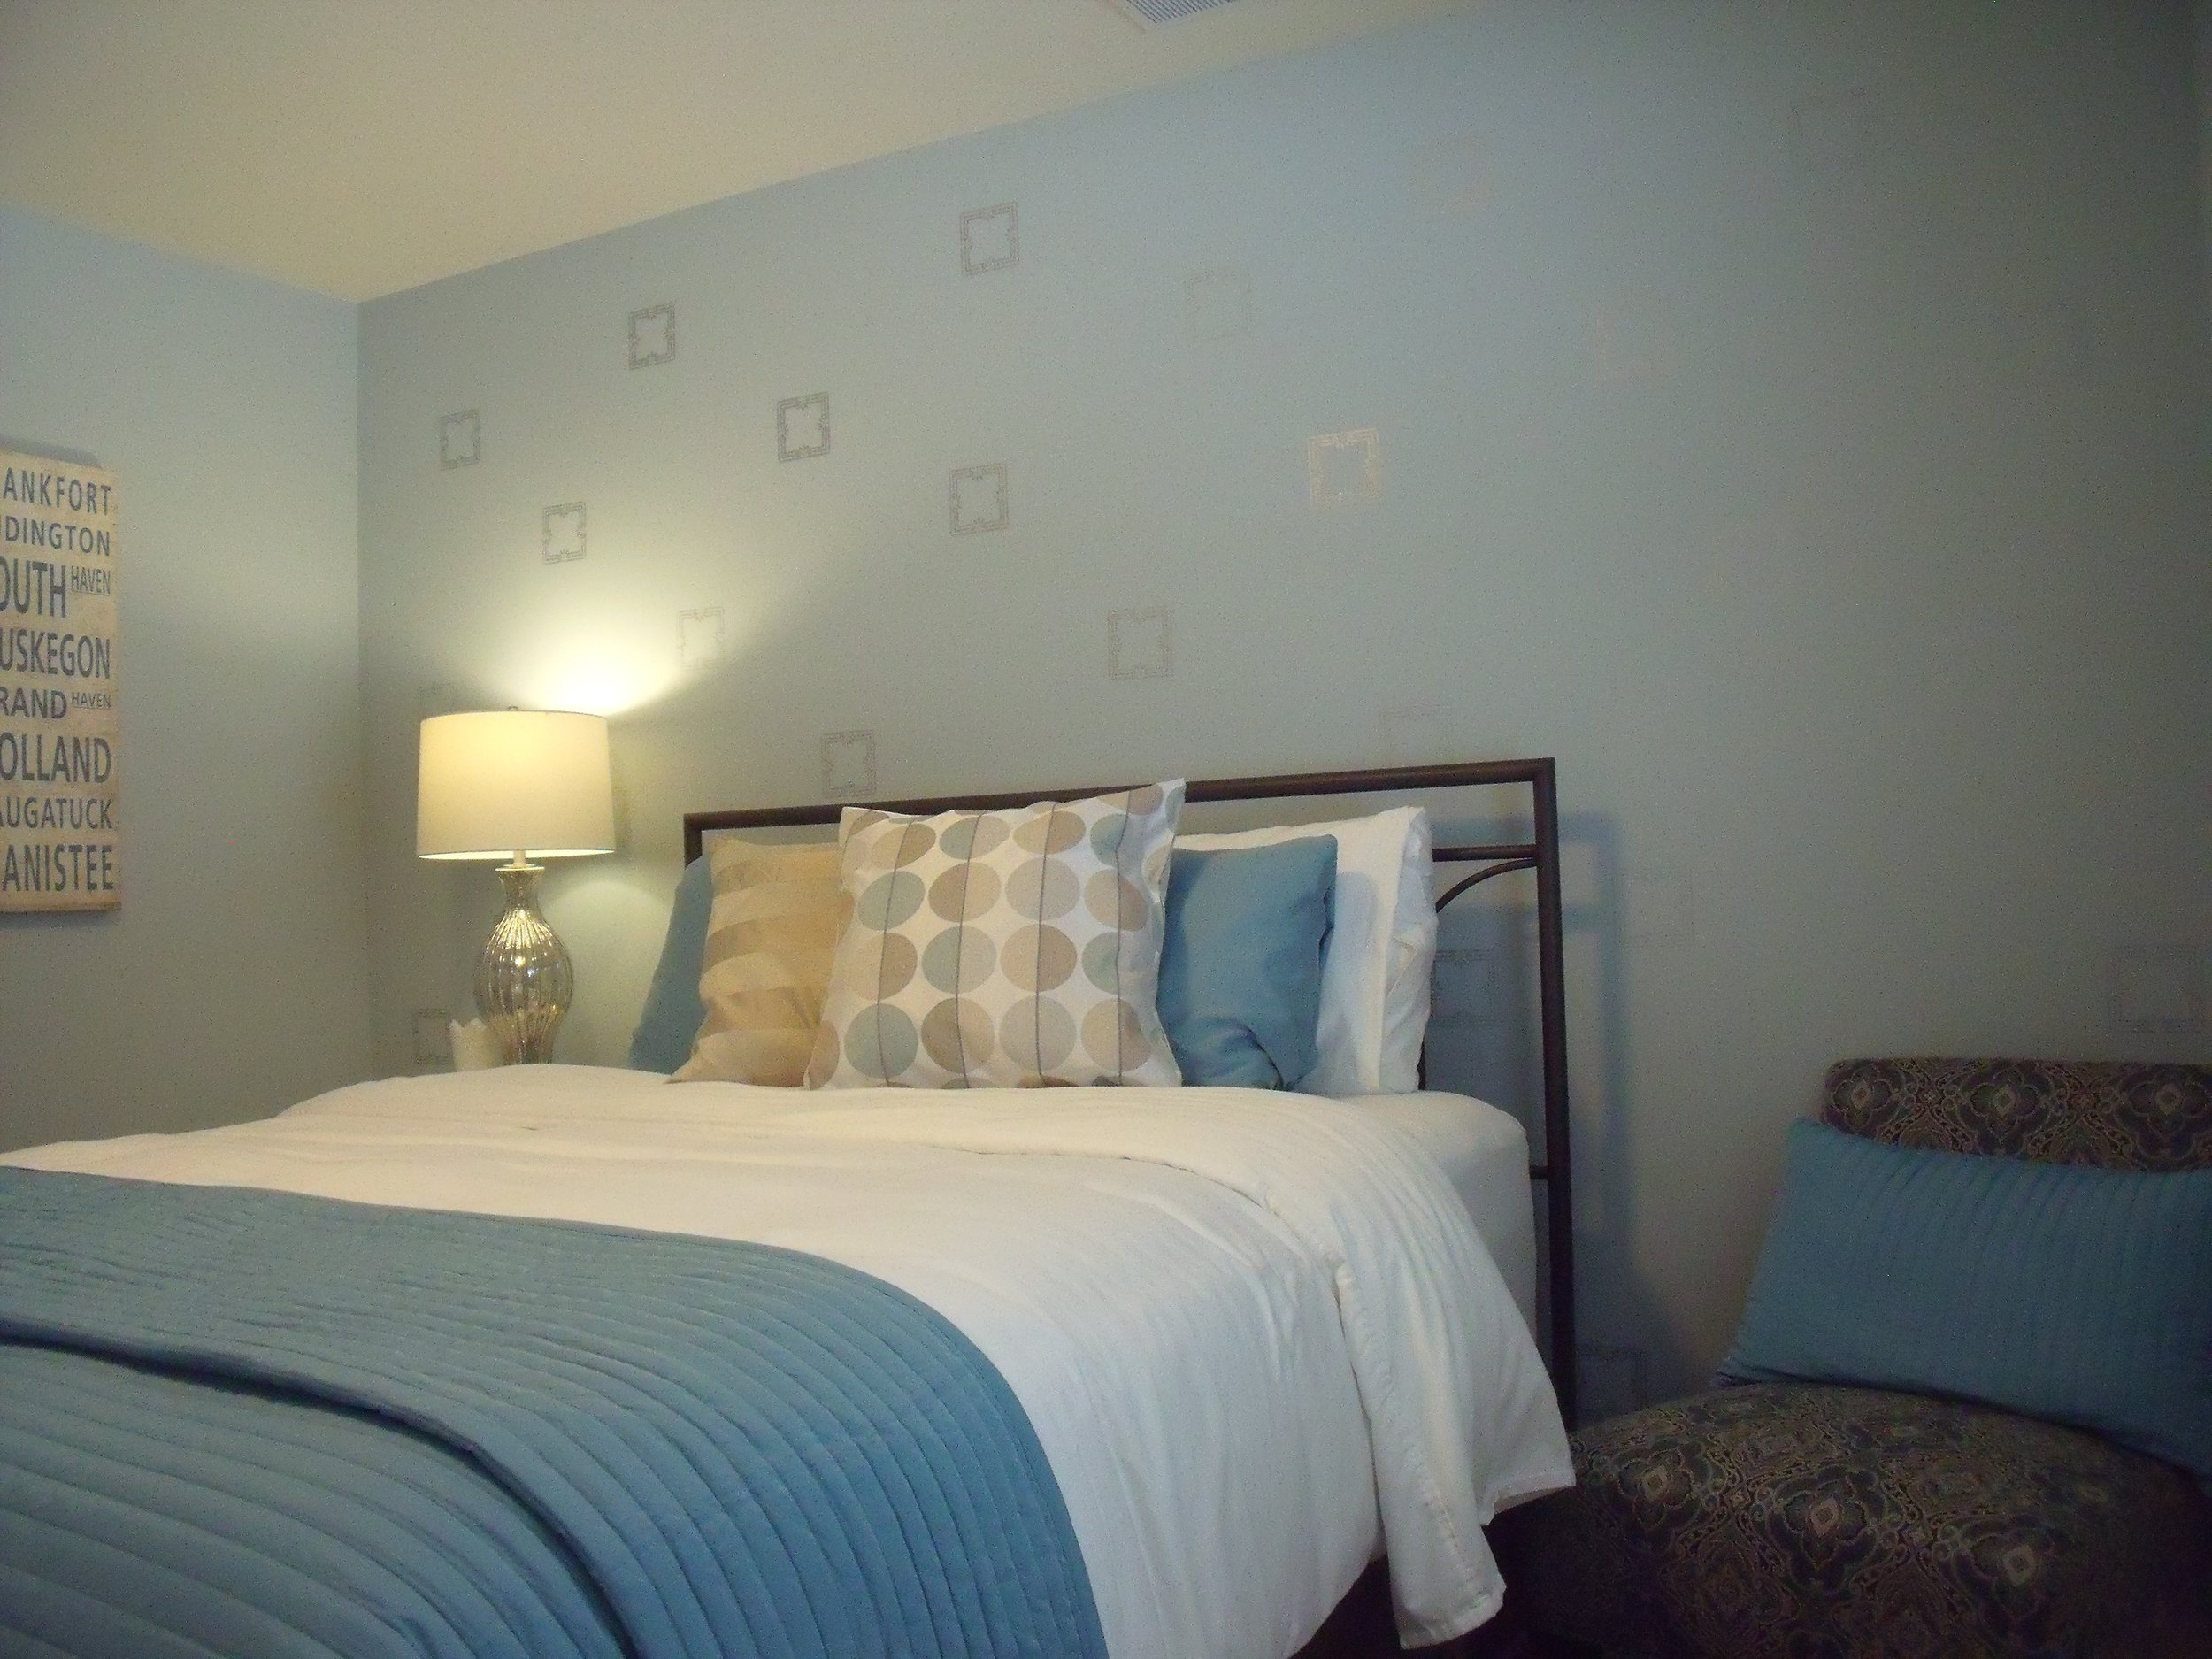 Lydia's Retreat… - contemporary, cozy room with hints of the traditional. The Retreat is accented in calming colors of icy blue, taupe, & silver. It also has a small fireplace for that romantic touch or a little extra warmth. Roomy closet to store all your personal items, along with a large full bathroom with tub/shower just steps away (sometimes shared with Mayme's Hideaway) . Located on the ground level. $75-$115.